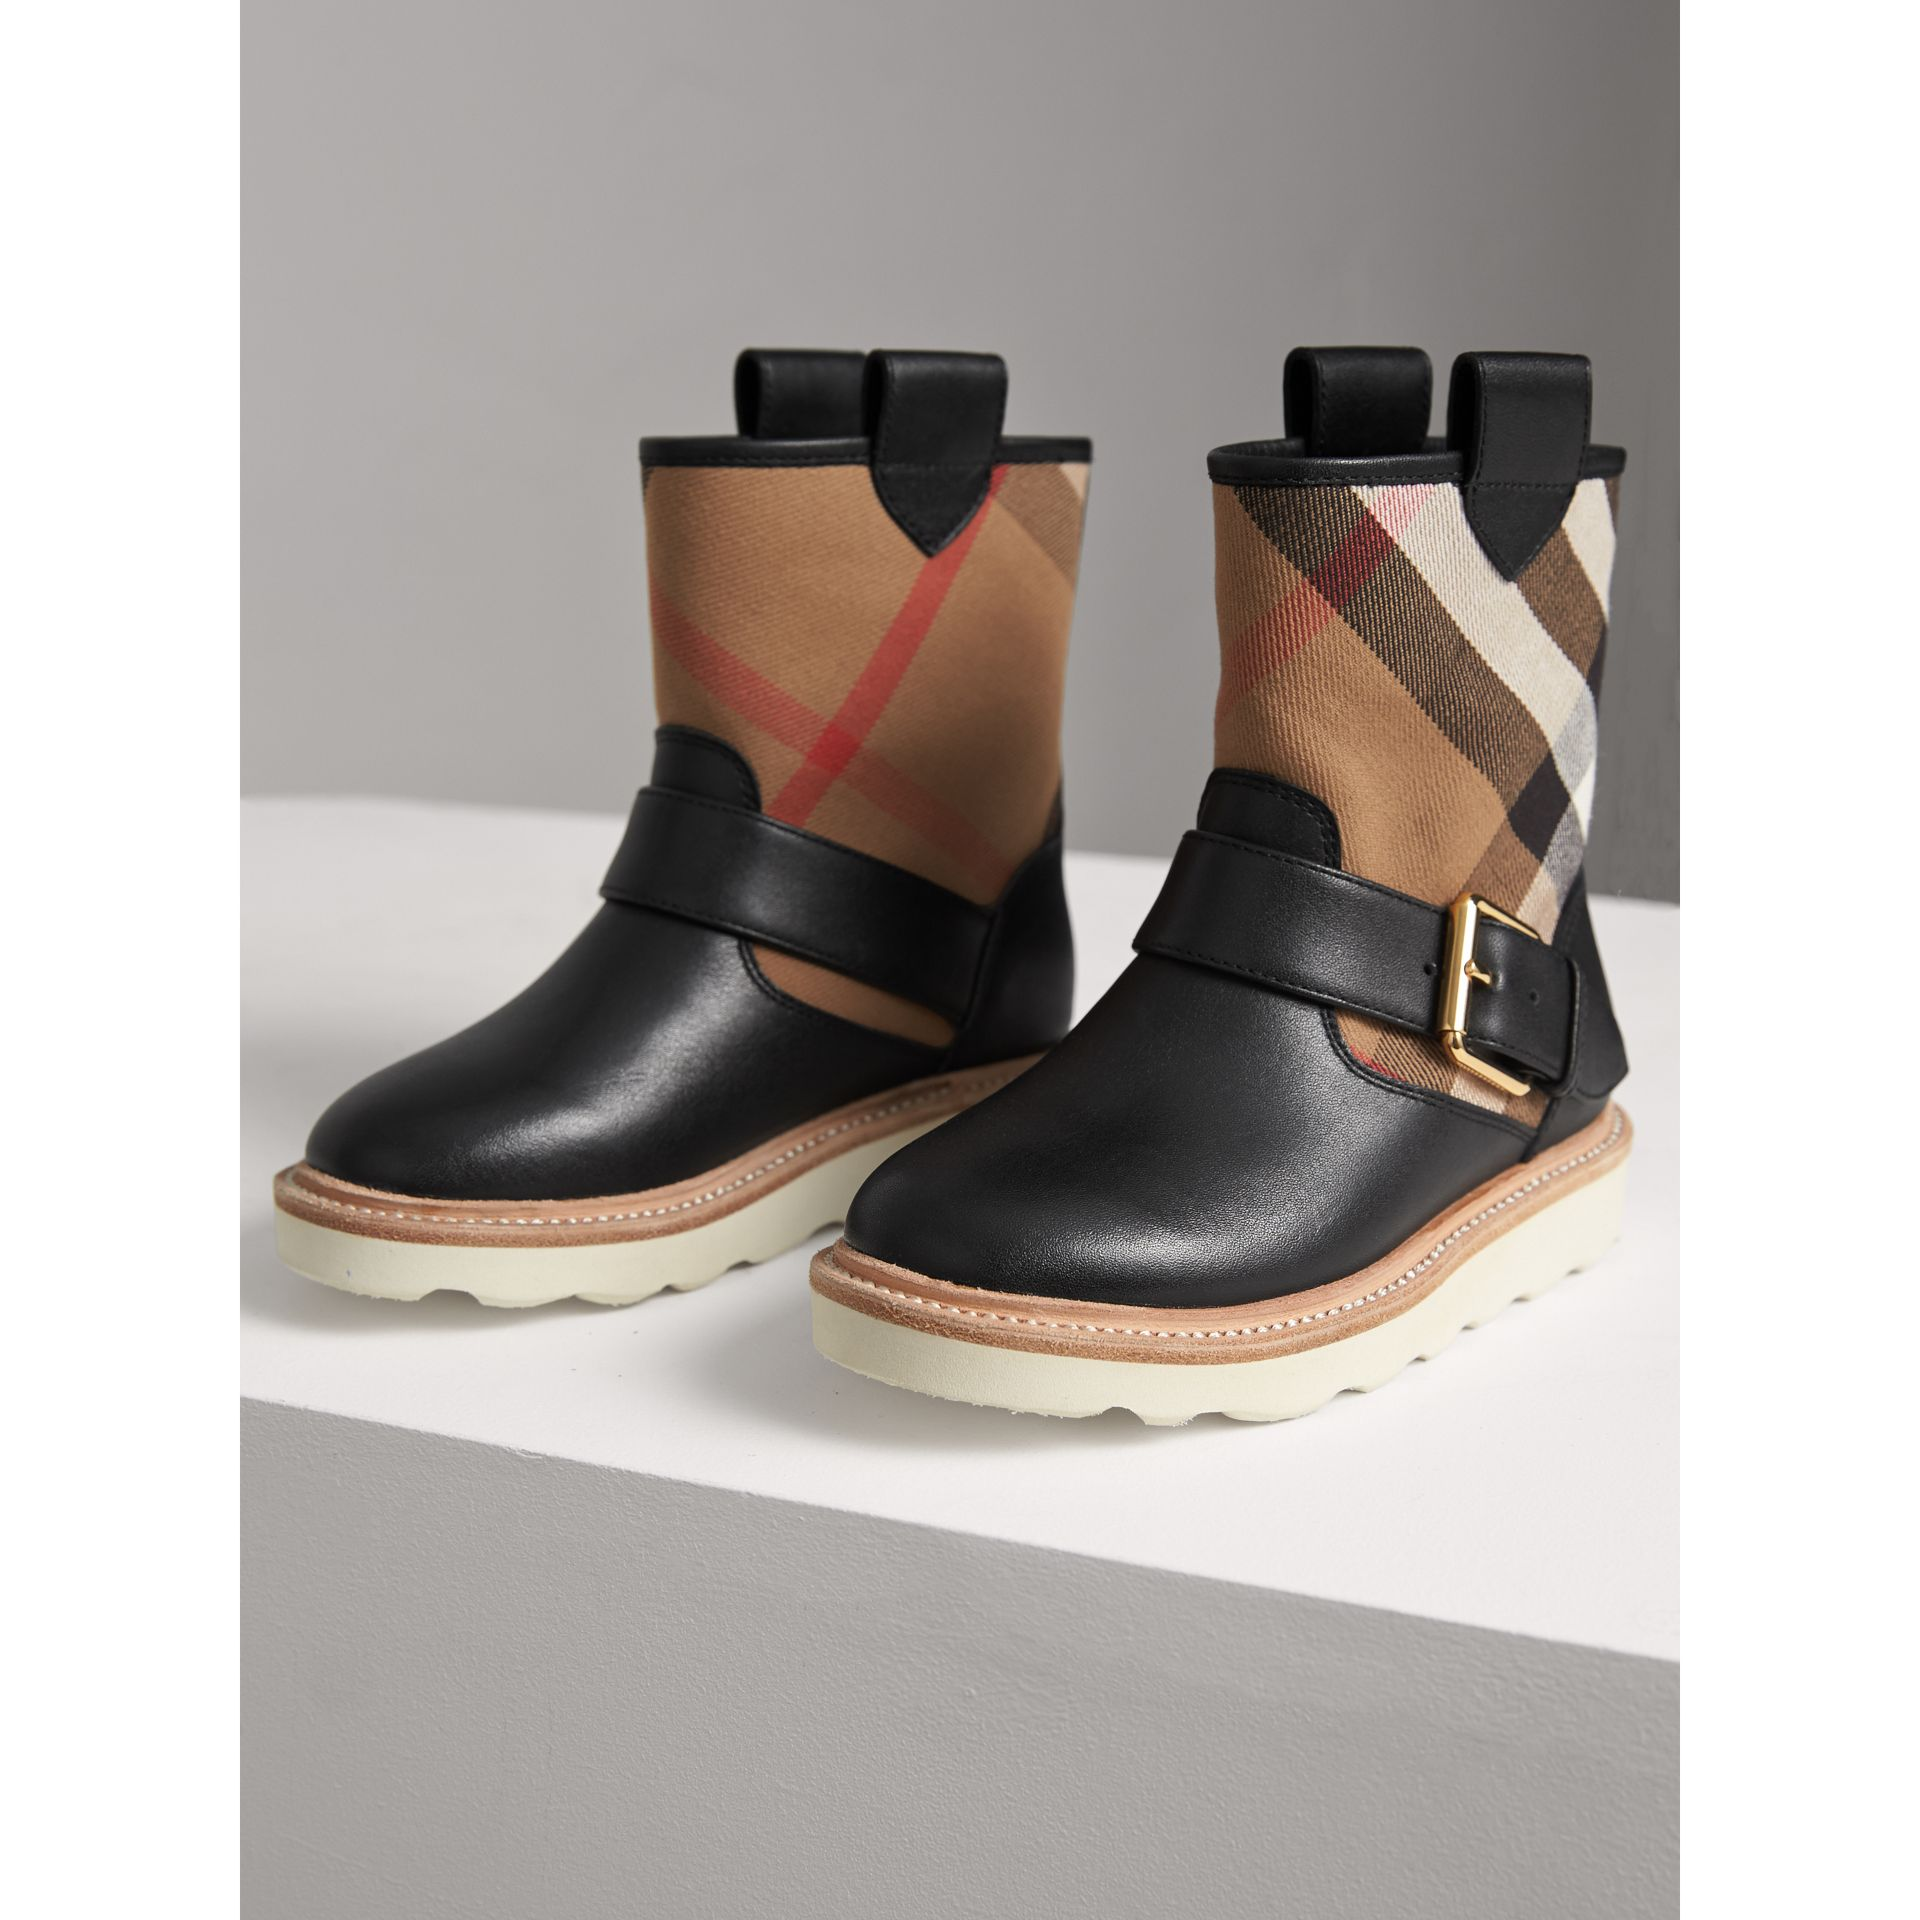 House Check and Leather Weather Boots in Classic | Burberry - gallery image 3